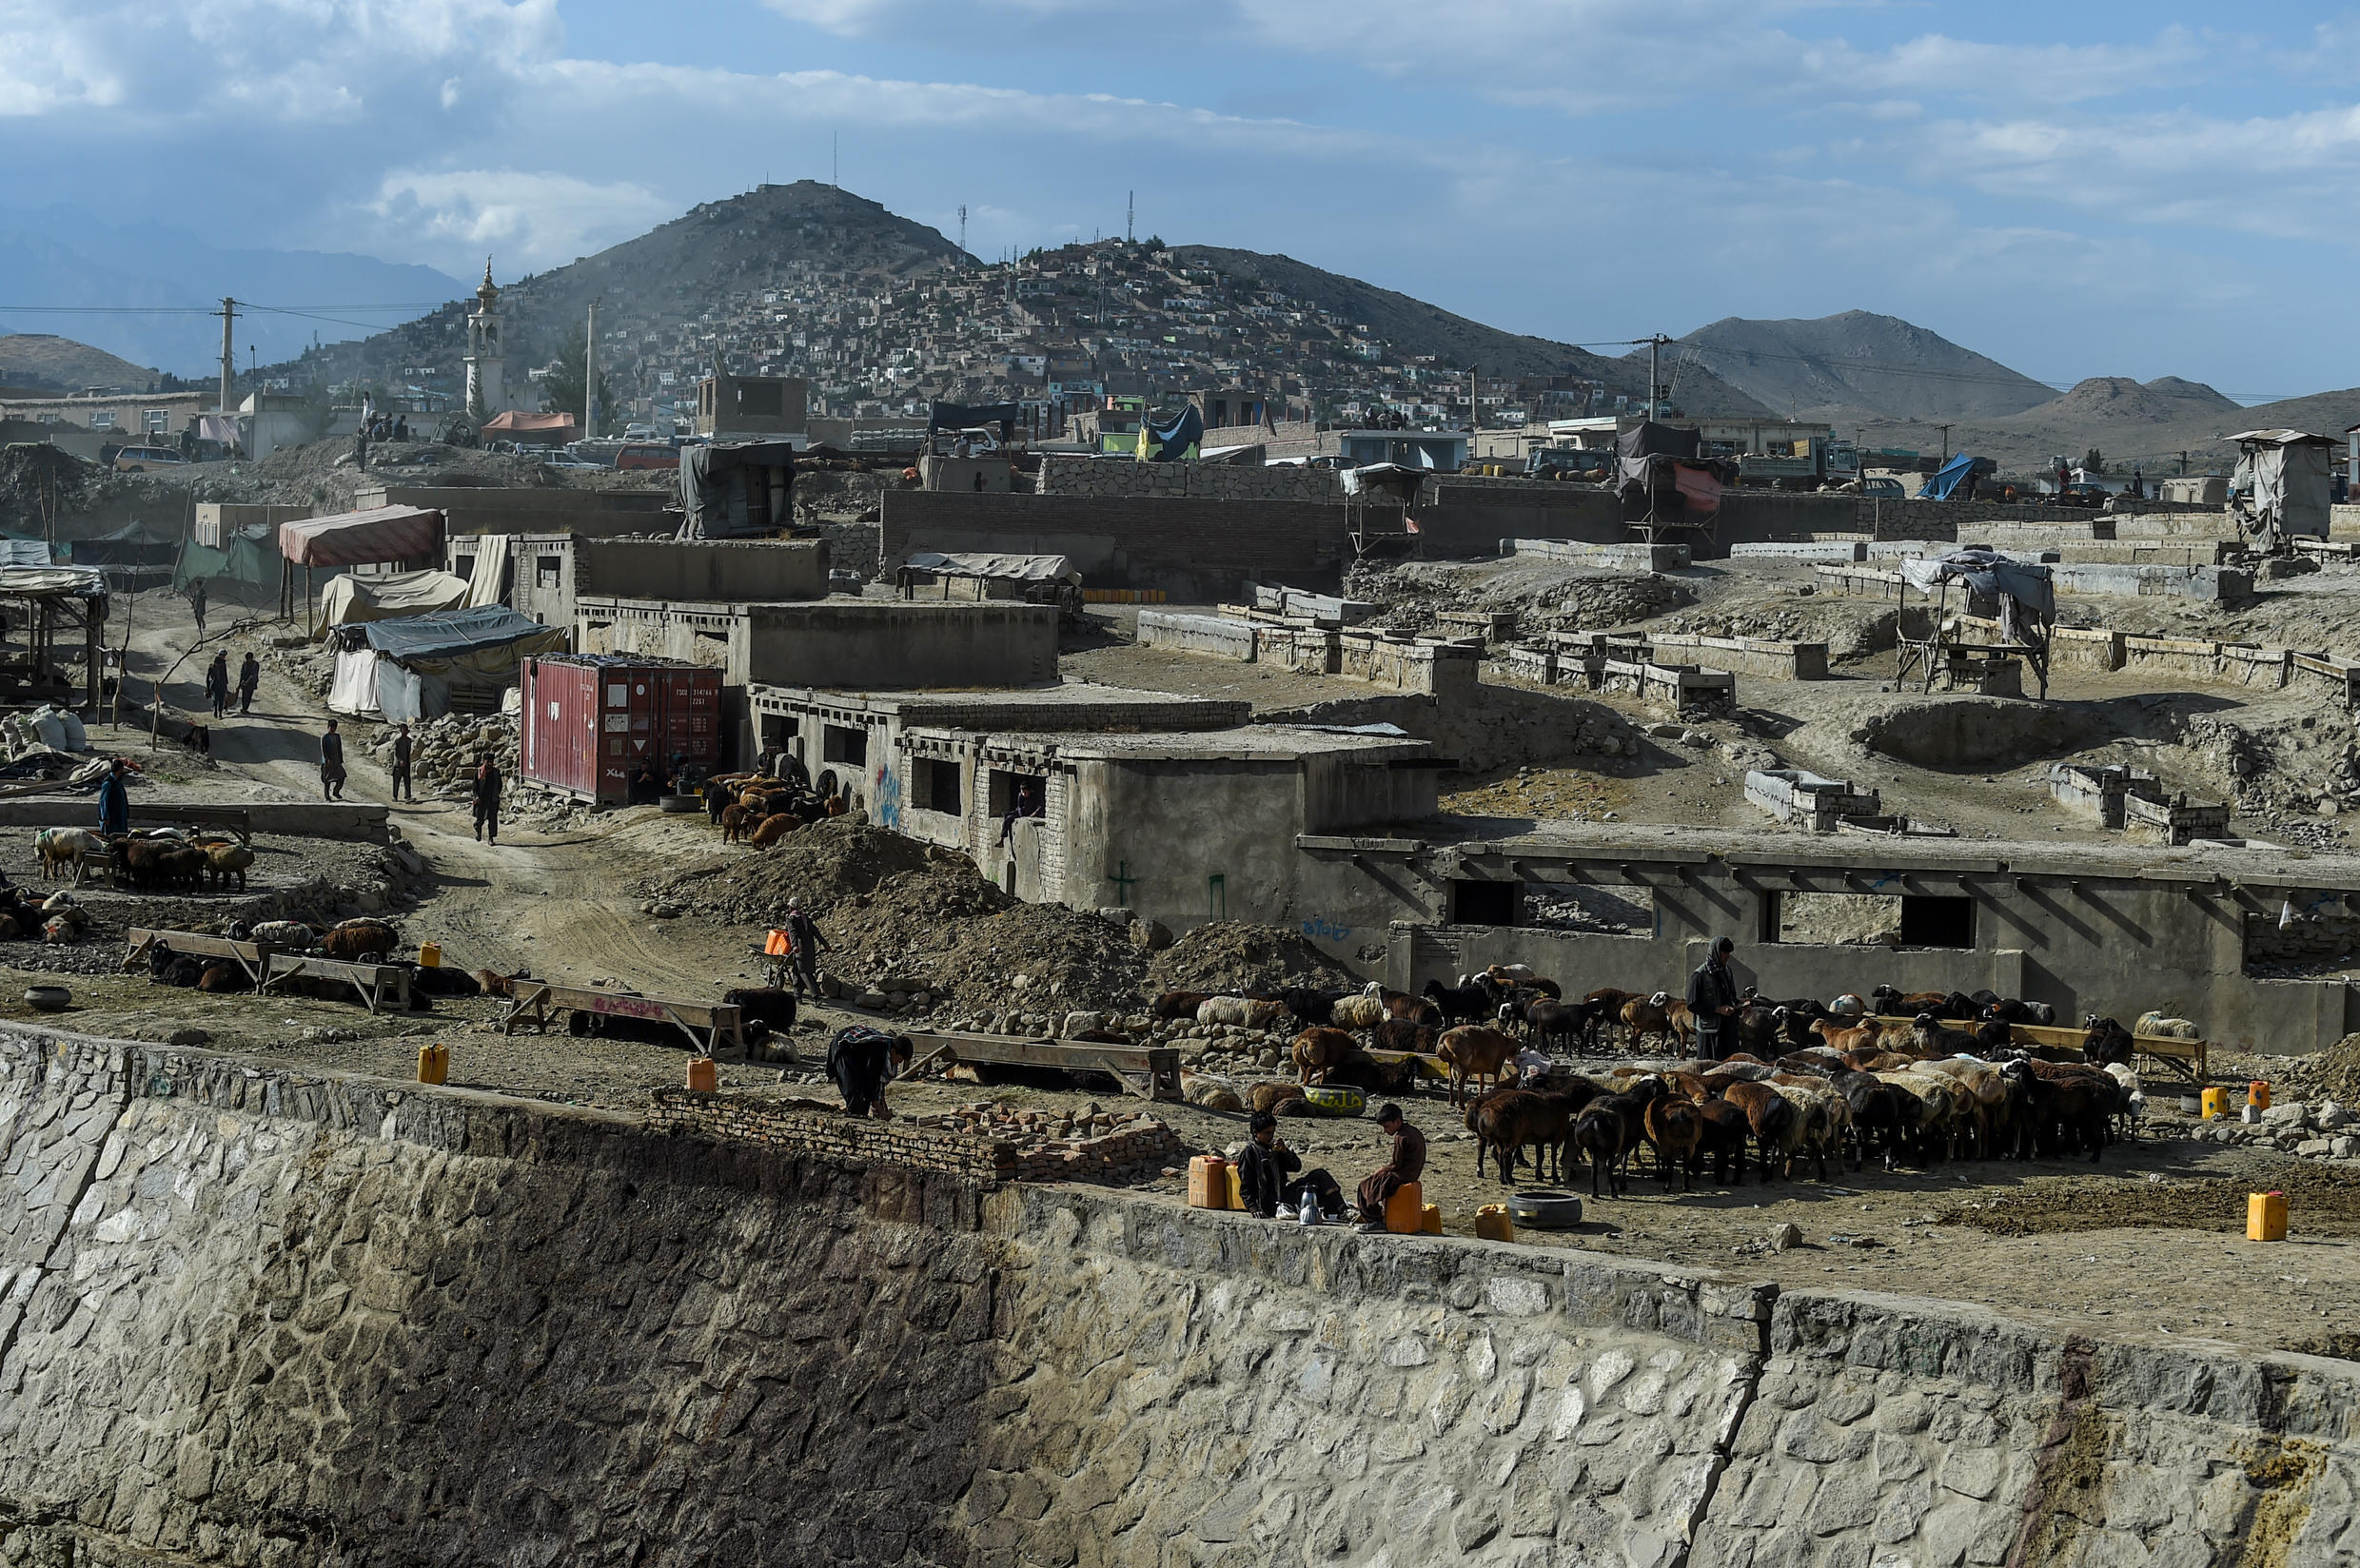 In recent months violence has soared in Afghanistan, with the Taliban carrying out near-daily attacks against security forces